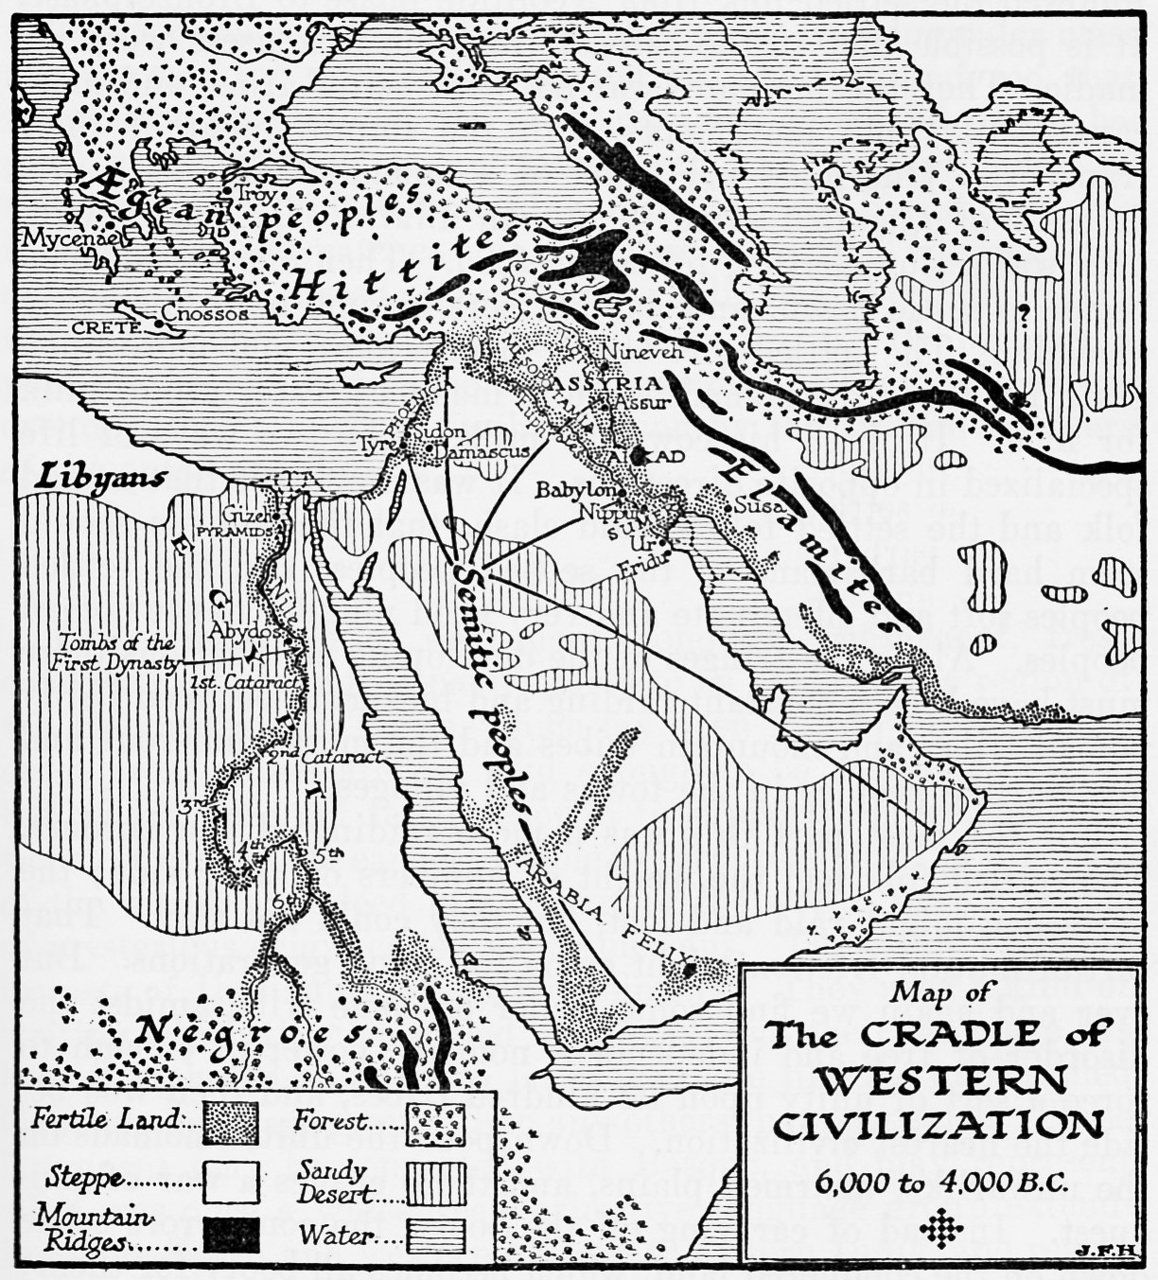 A Map Of The Cradle Of Civilizations